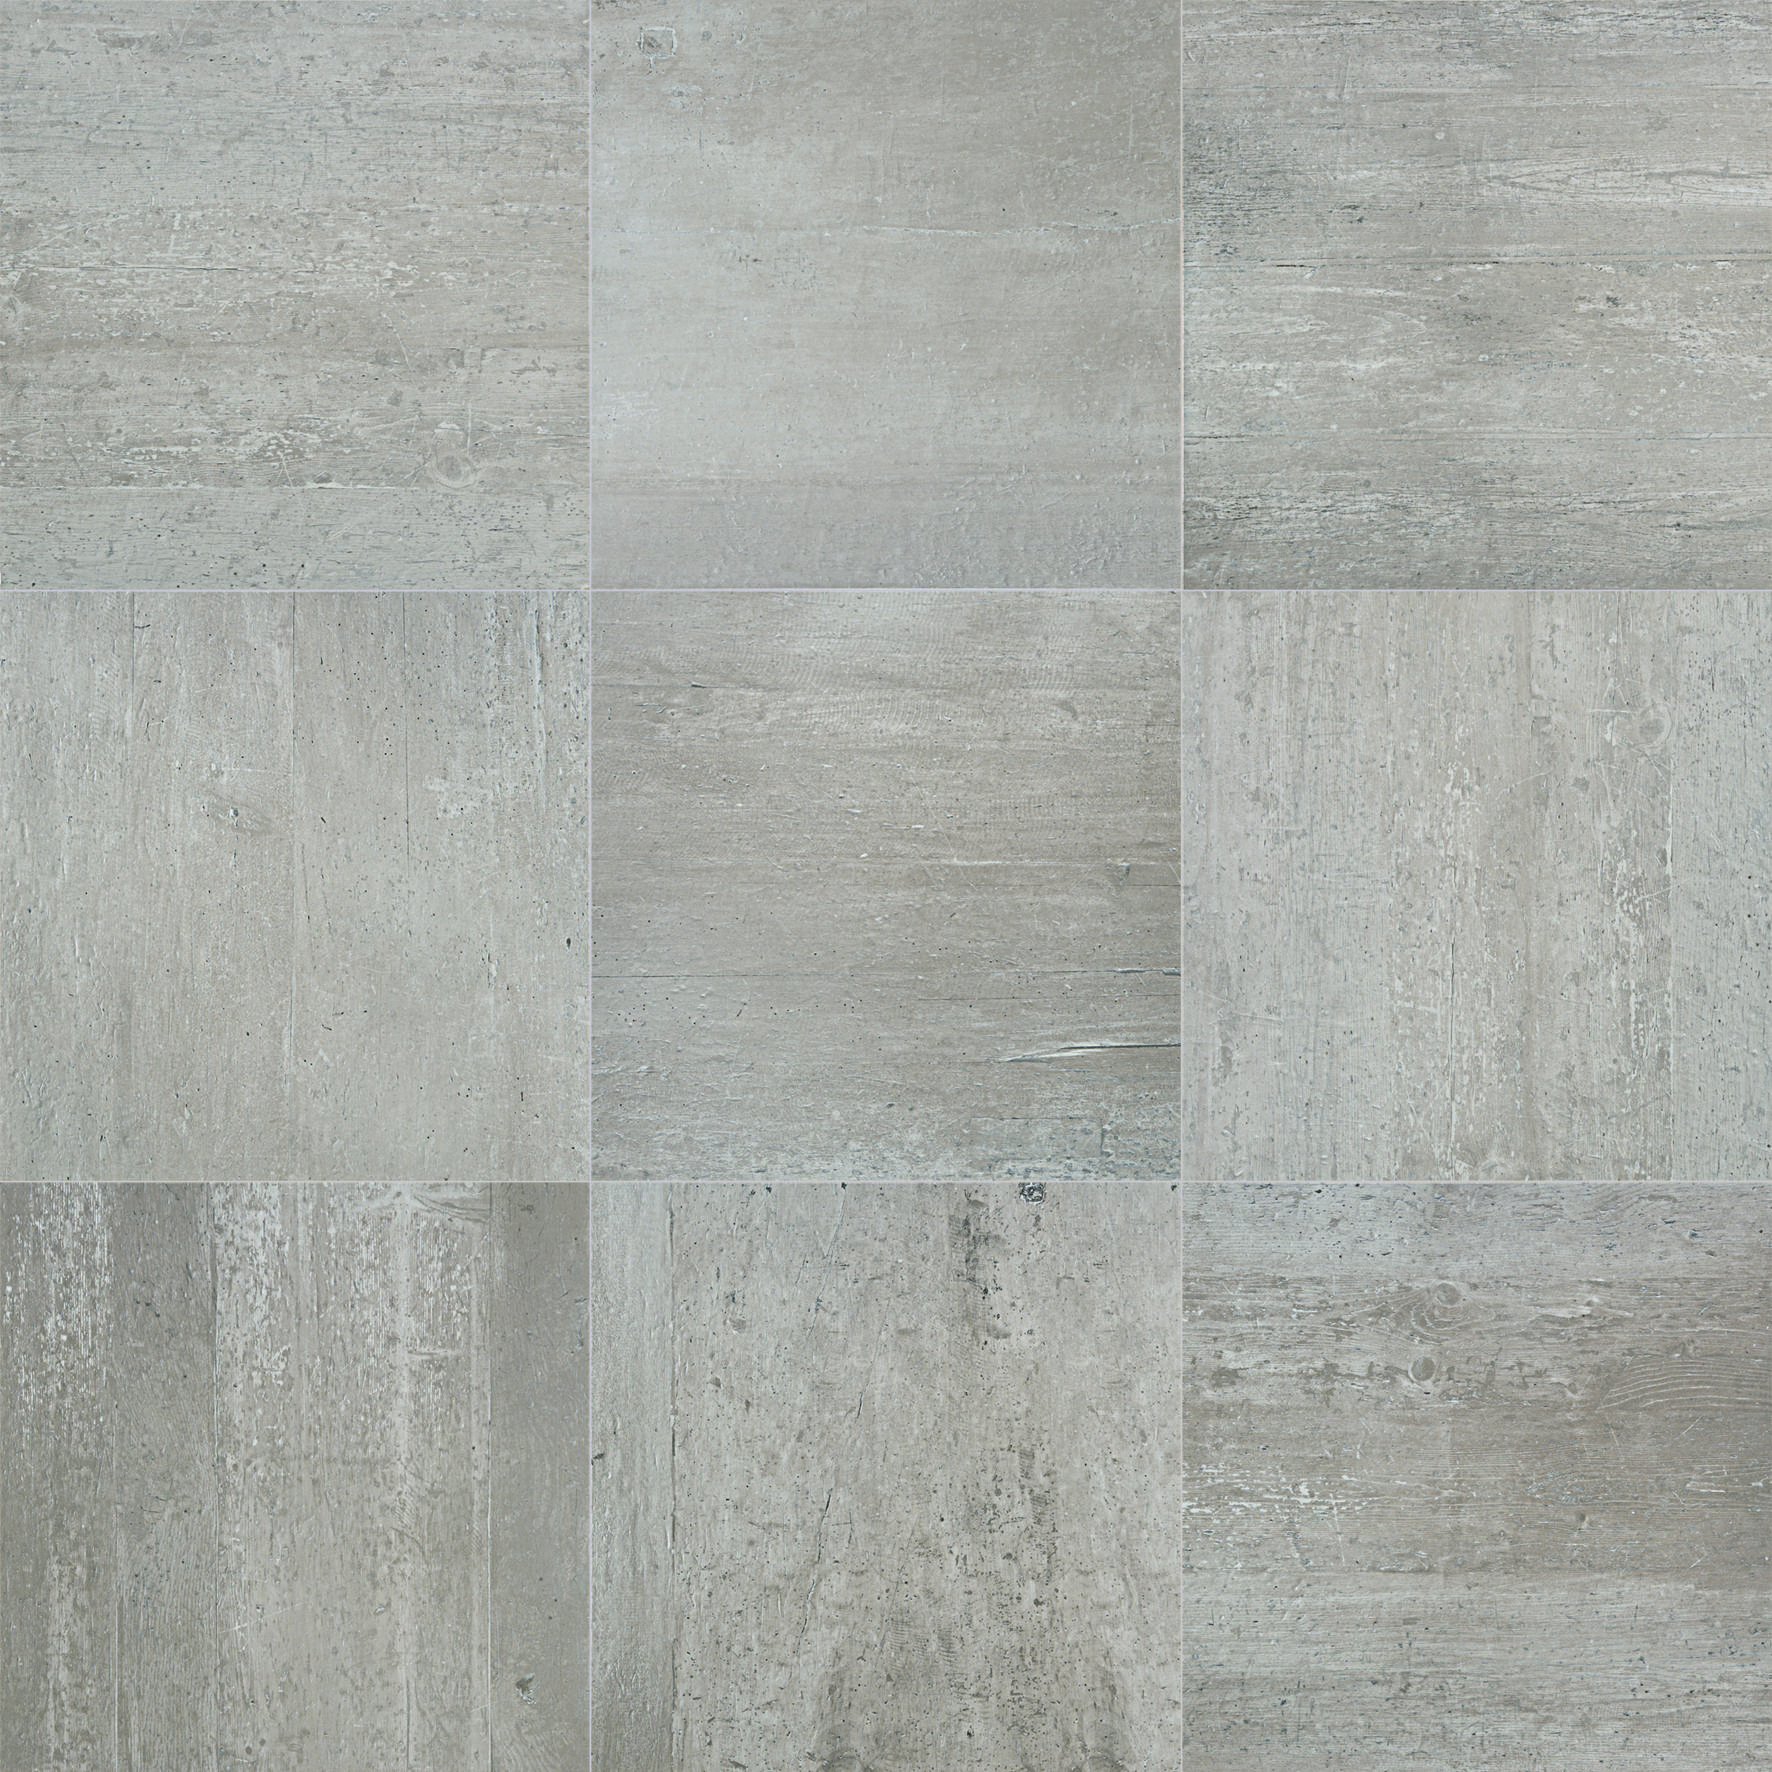 Porcelain tiles from the wood2 collection in dust by httpwww porcelain tiles from the wood2 collection in dust by http doublecrazyfo Choice Image